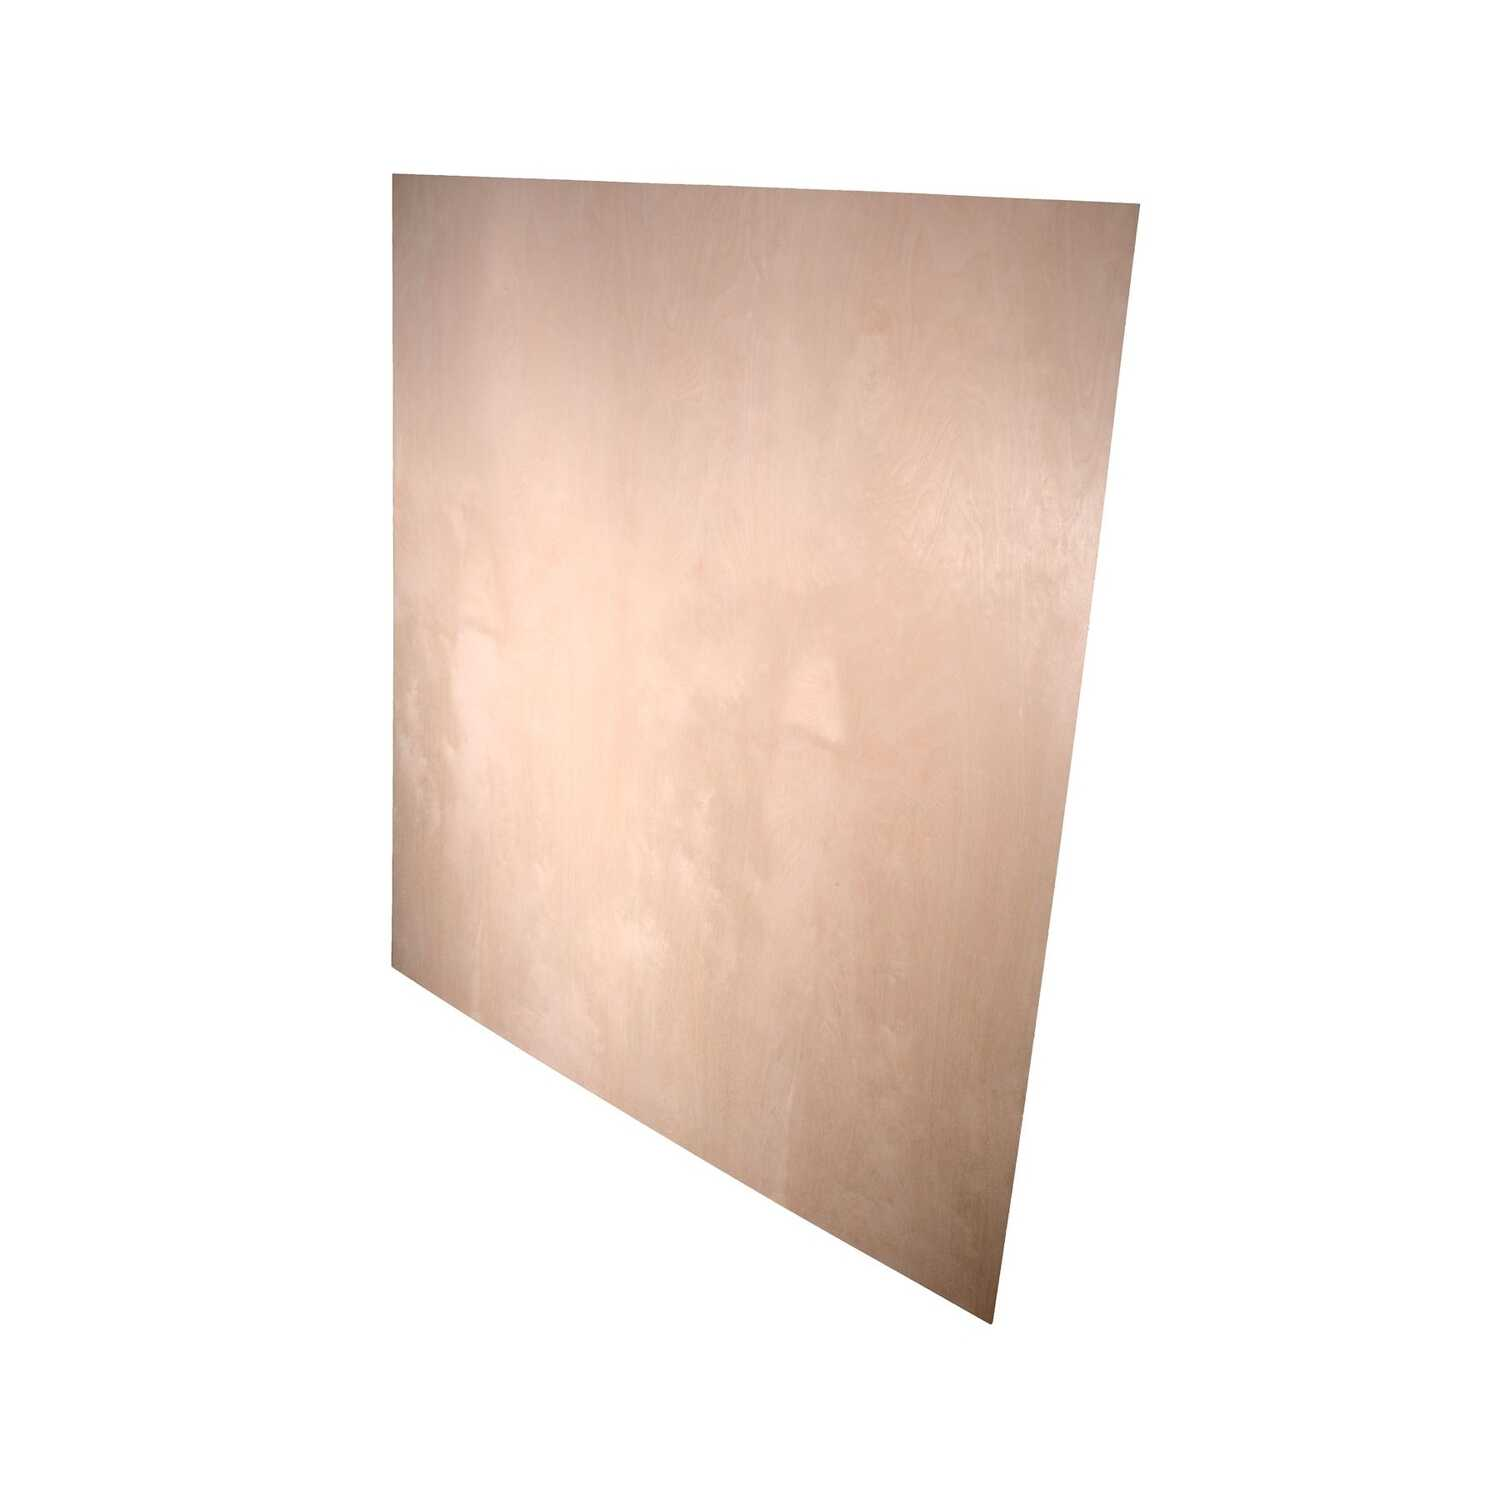 Alexandria Moulding  4 ft. W x 4 ft. L x 0.75 in.  Plywood